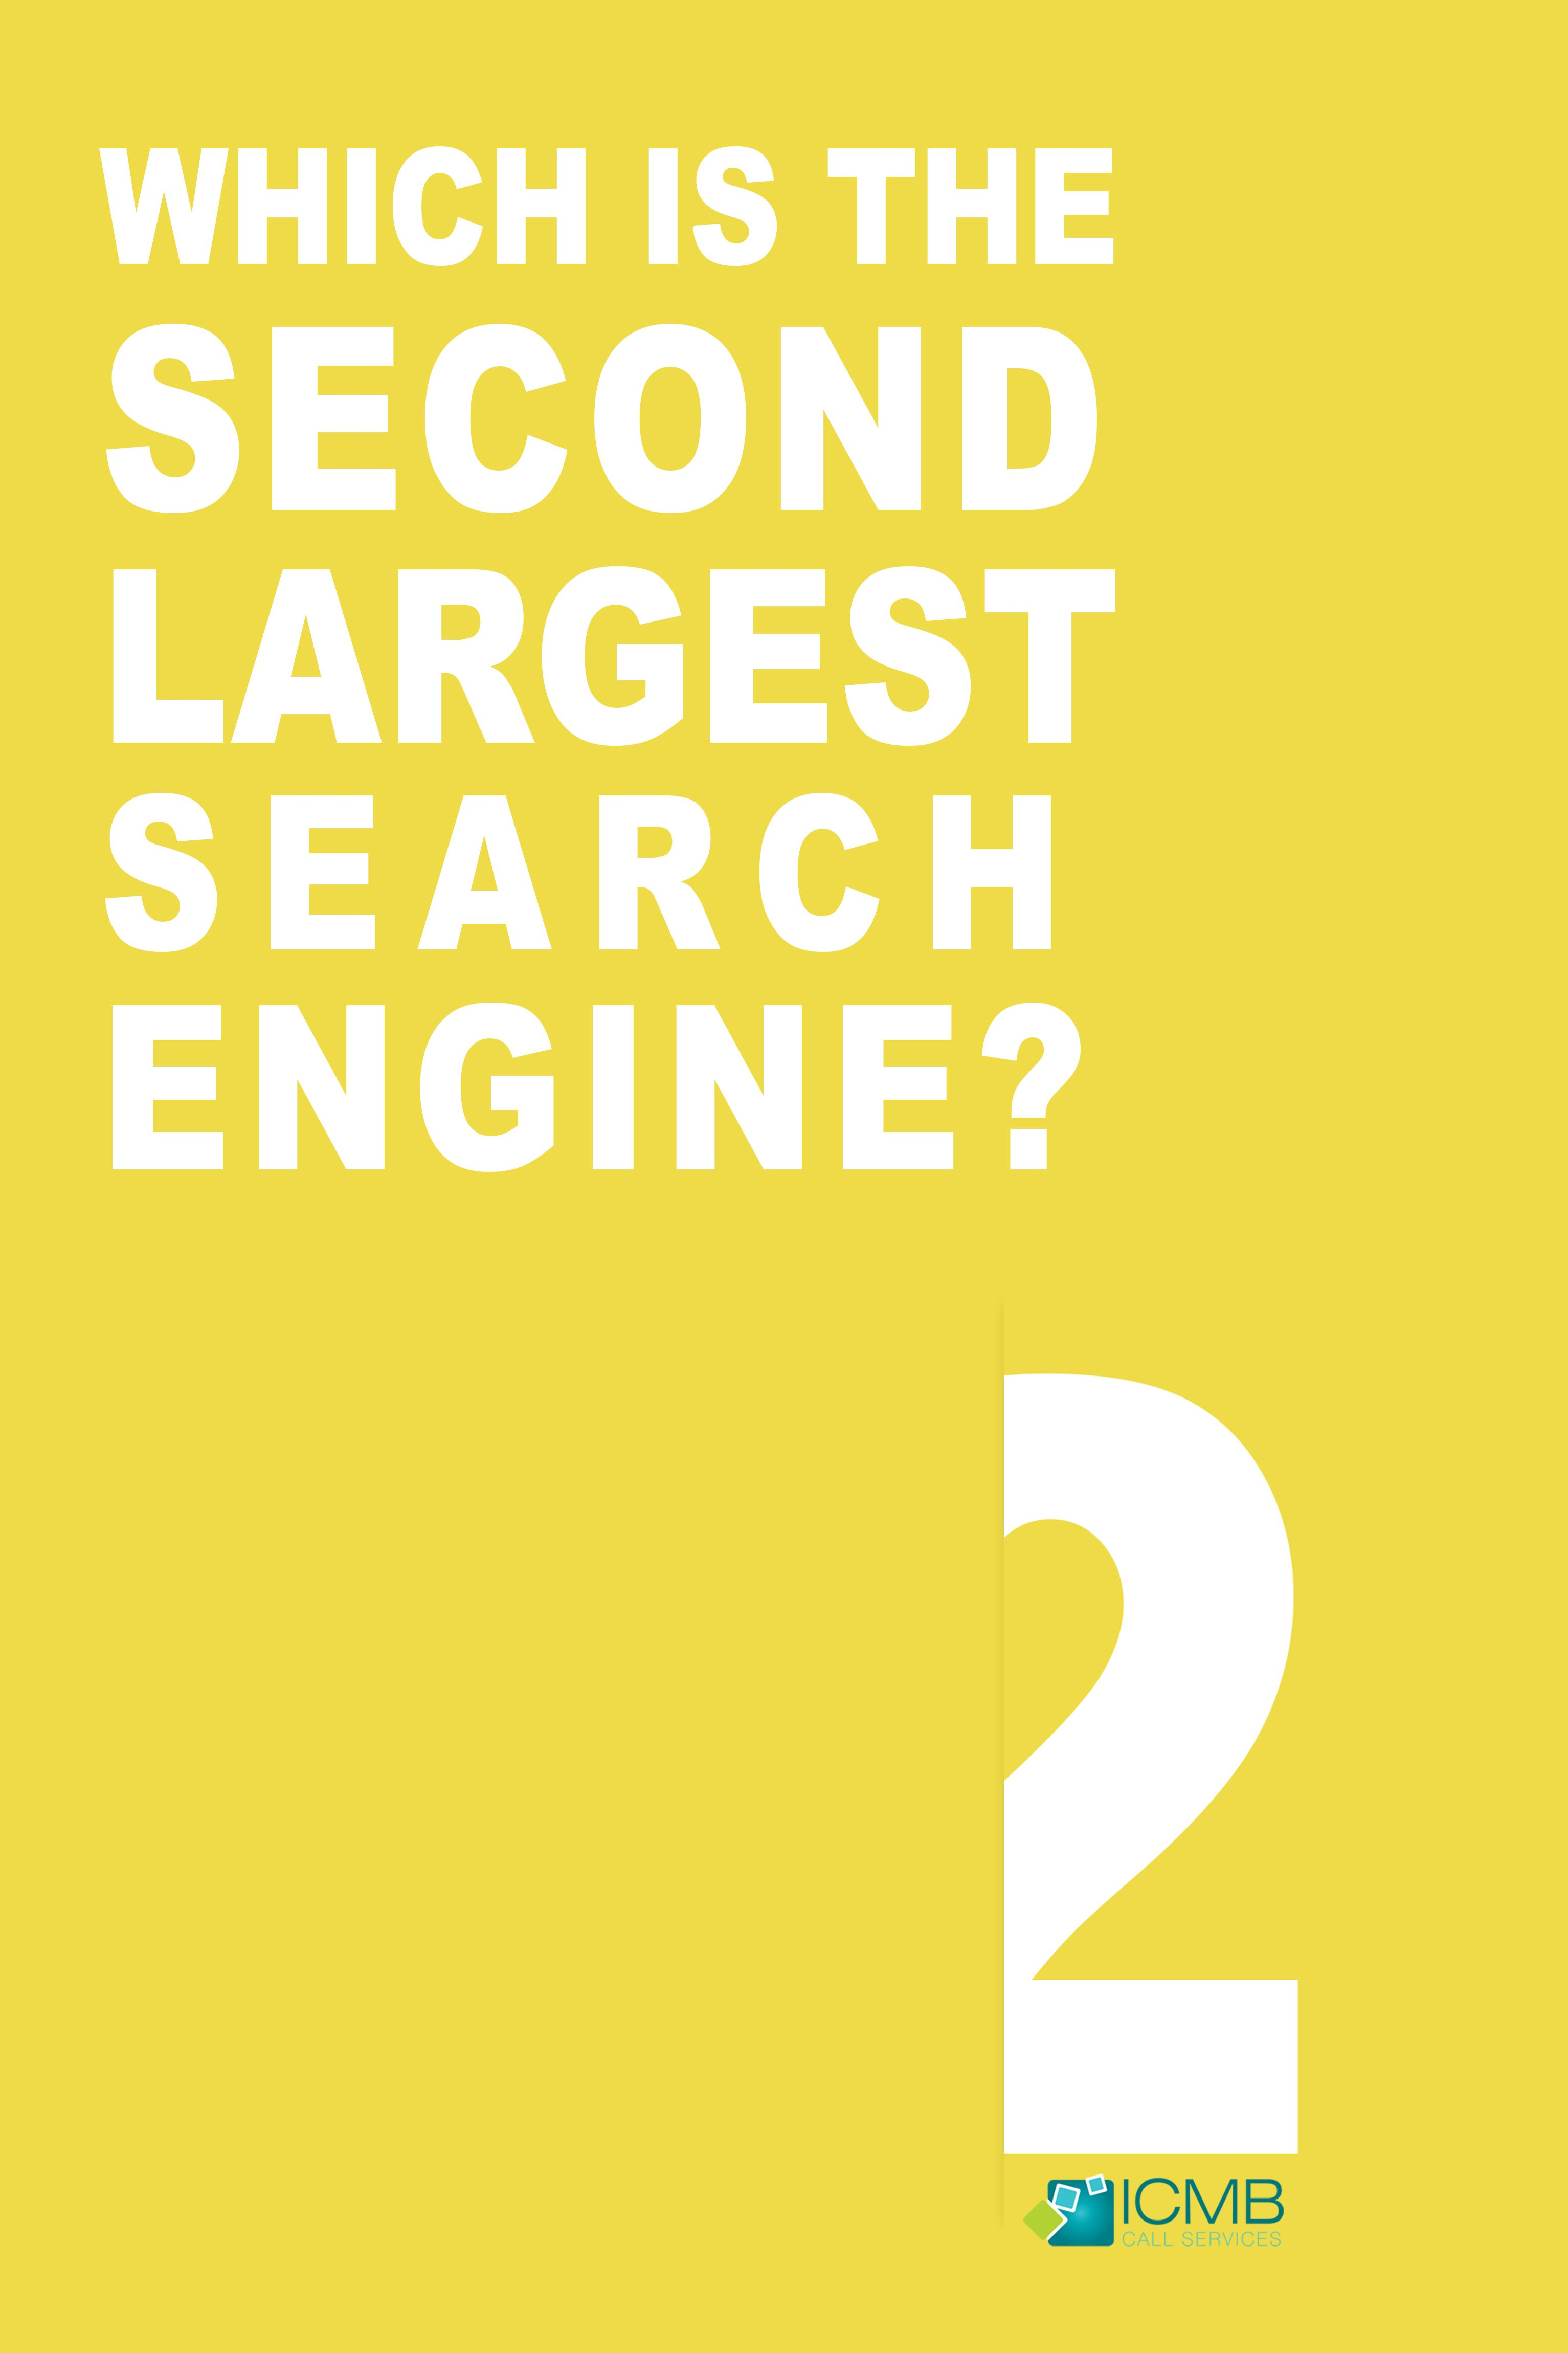 Google ranks first as the largest search engine.Guess who is in the second position and get a chance to win a prize through the lucky draw that follows.Please comment your answers below. #searchengine #seo #dubai #fun #win #smm #luckdraw #digital #world #uae #winner #quiz #digitalmarketing #searchengineoptimization #WeekendQuiz #pagelike